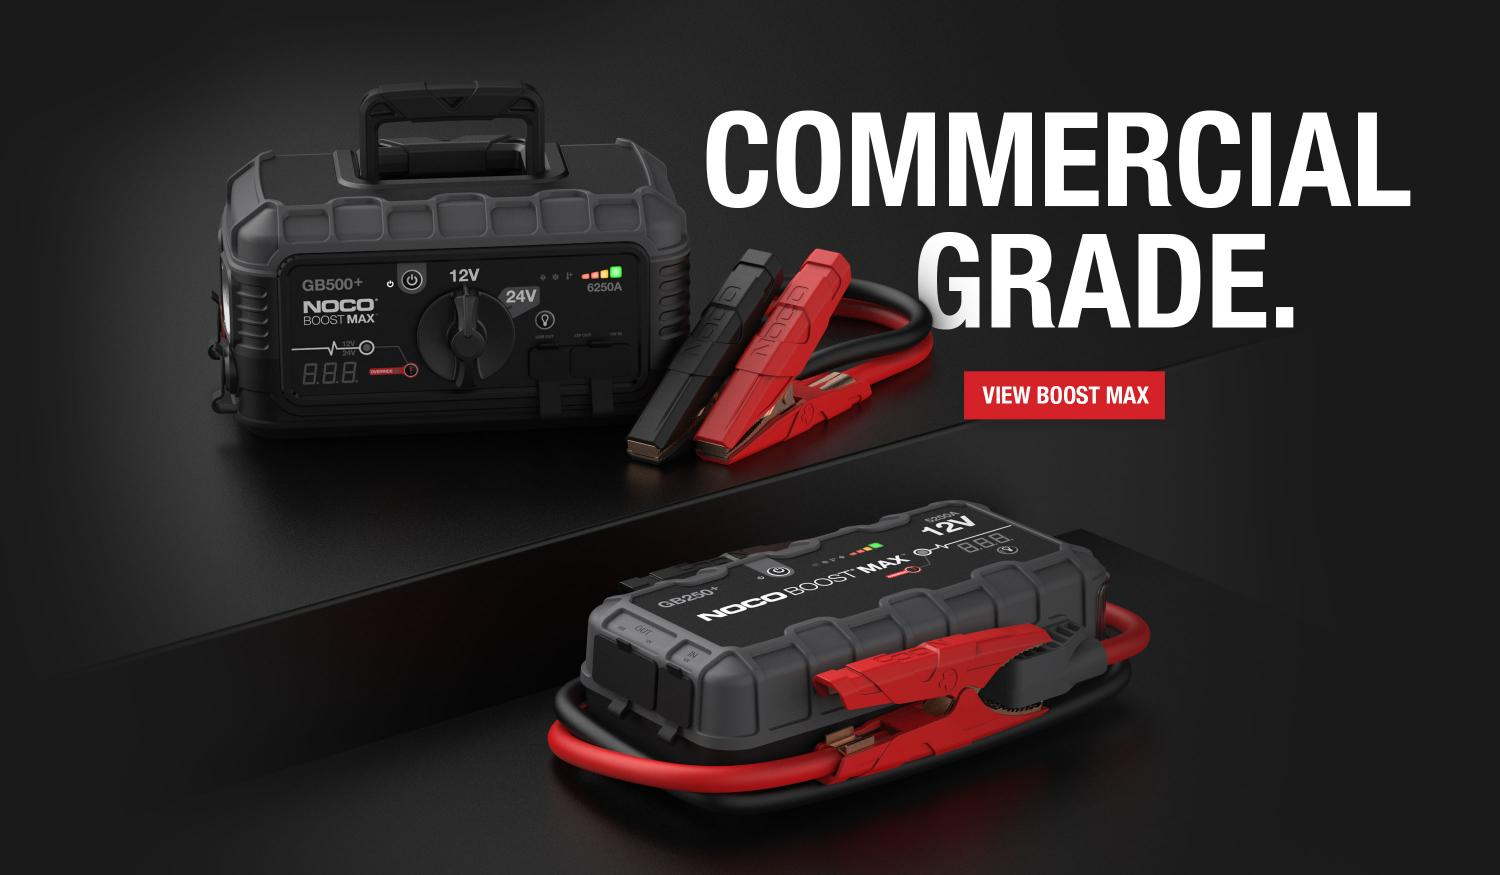 The all-new Boost Max jump starting series built for commercial applications including construction equipment and fleet. Made for 12V and 24V batteries.